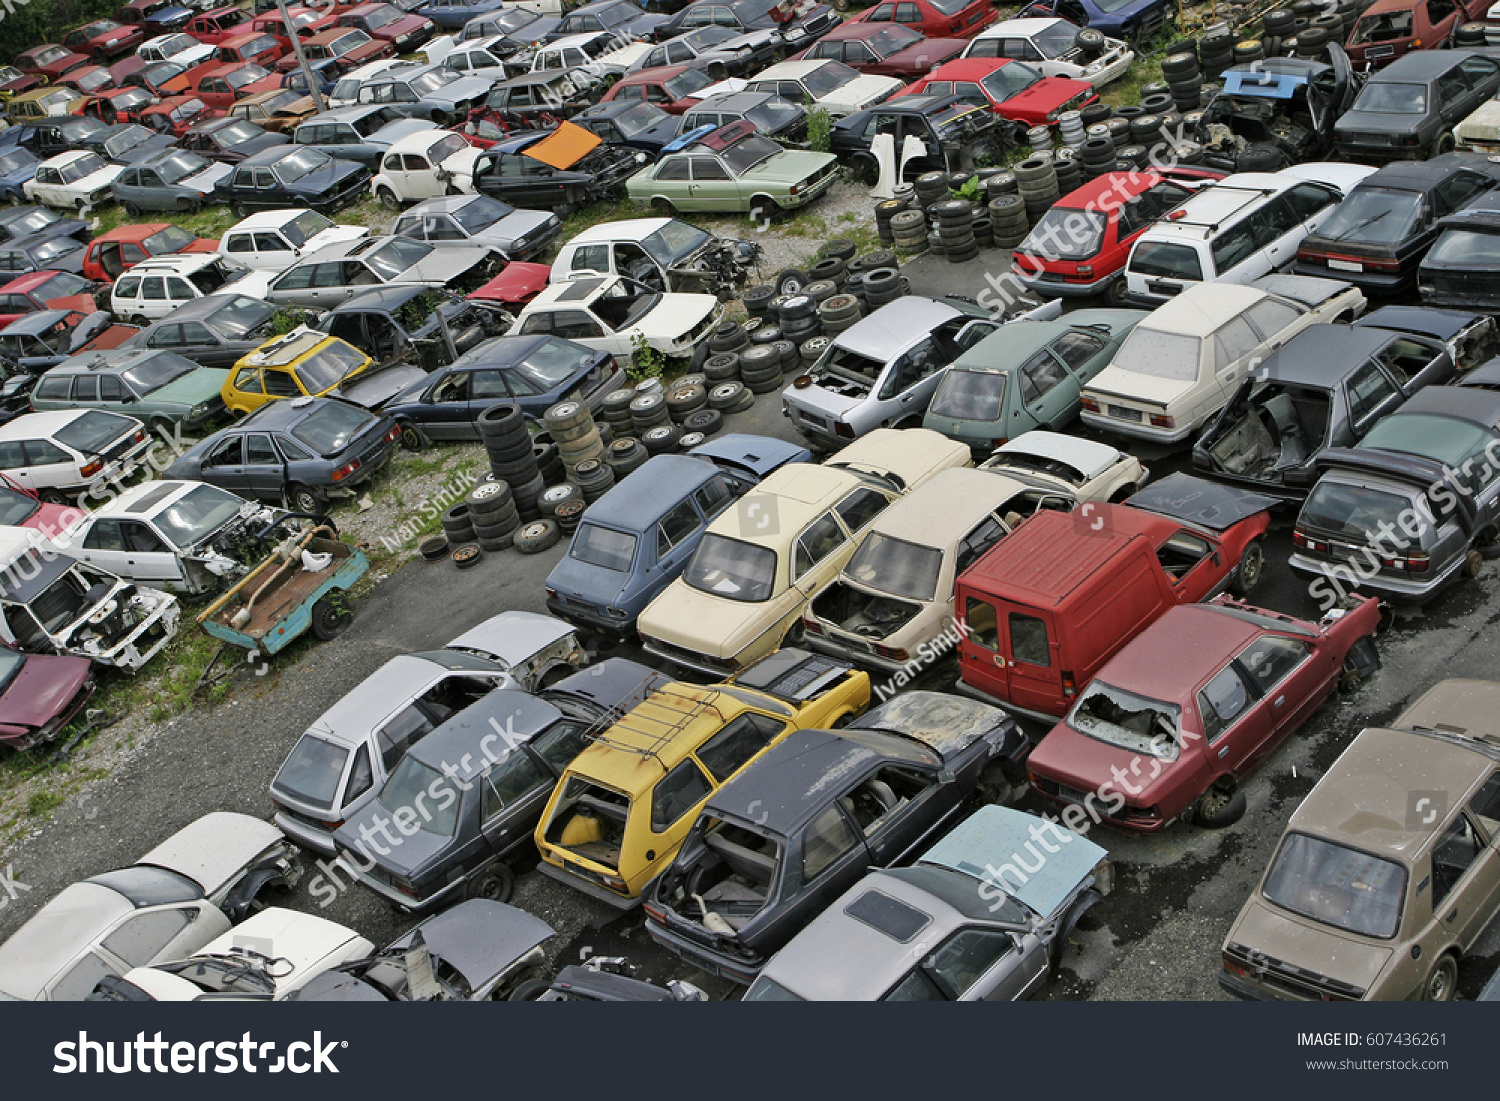 Scrap Car Recycle Yard Lots Old Stock Photo 607436261 - Shutterstock